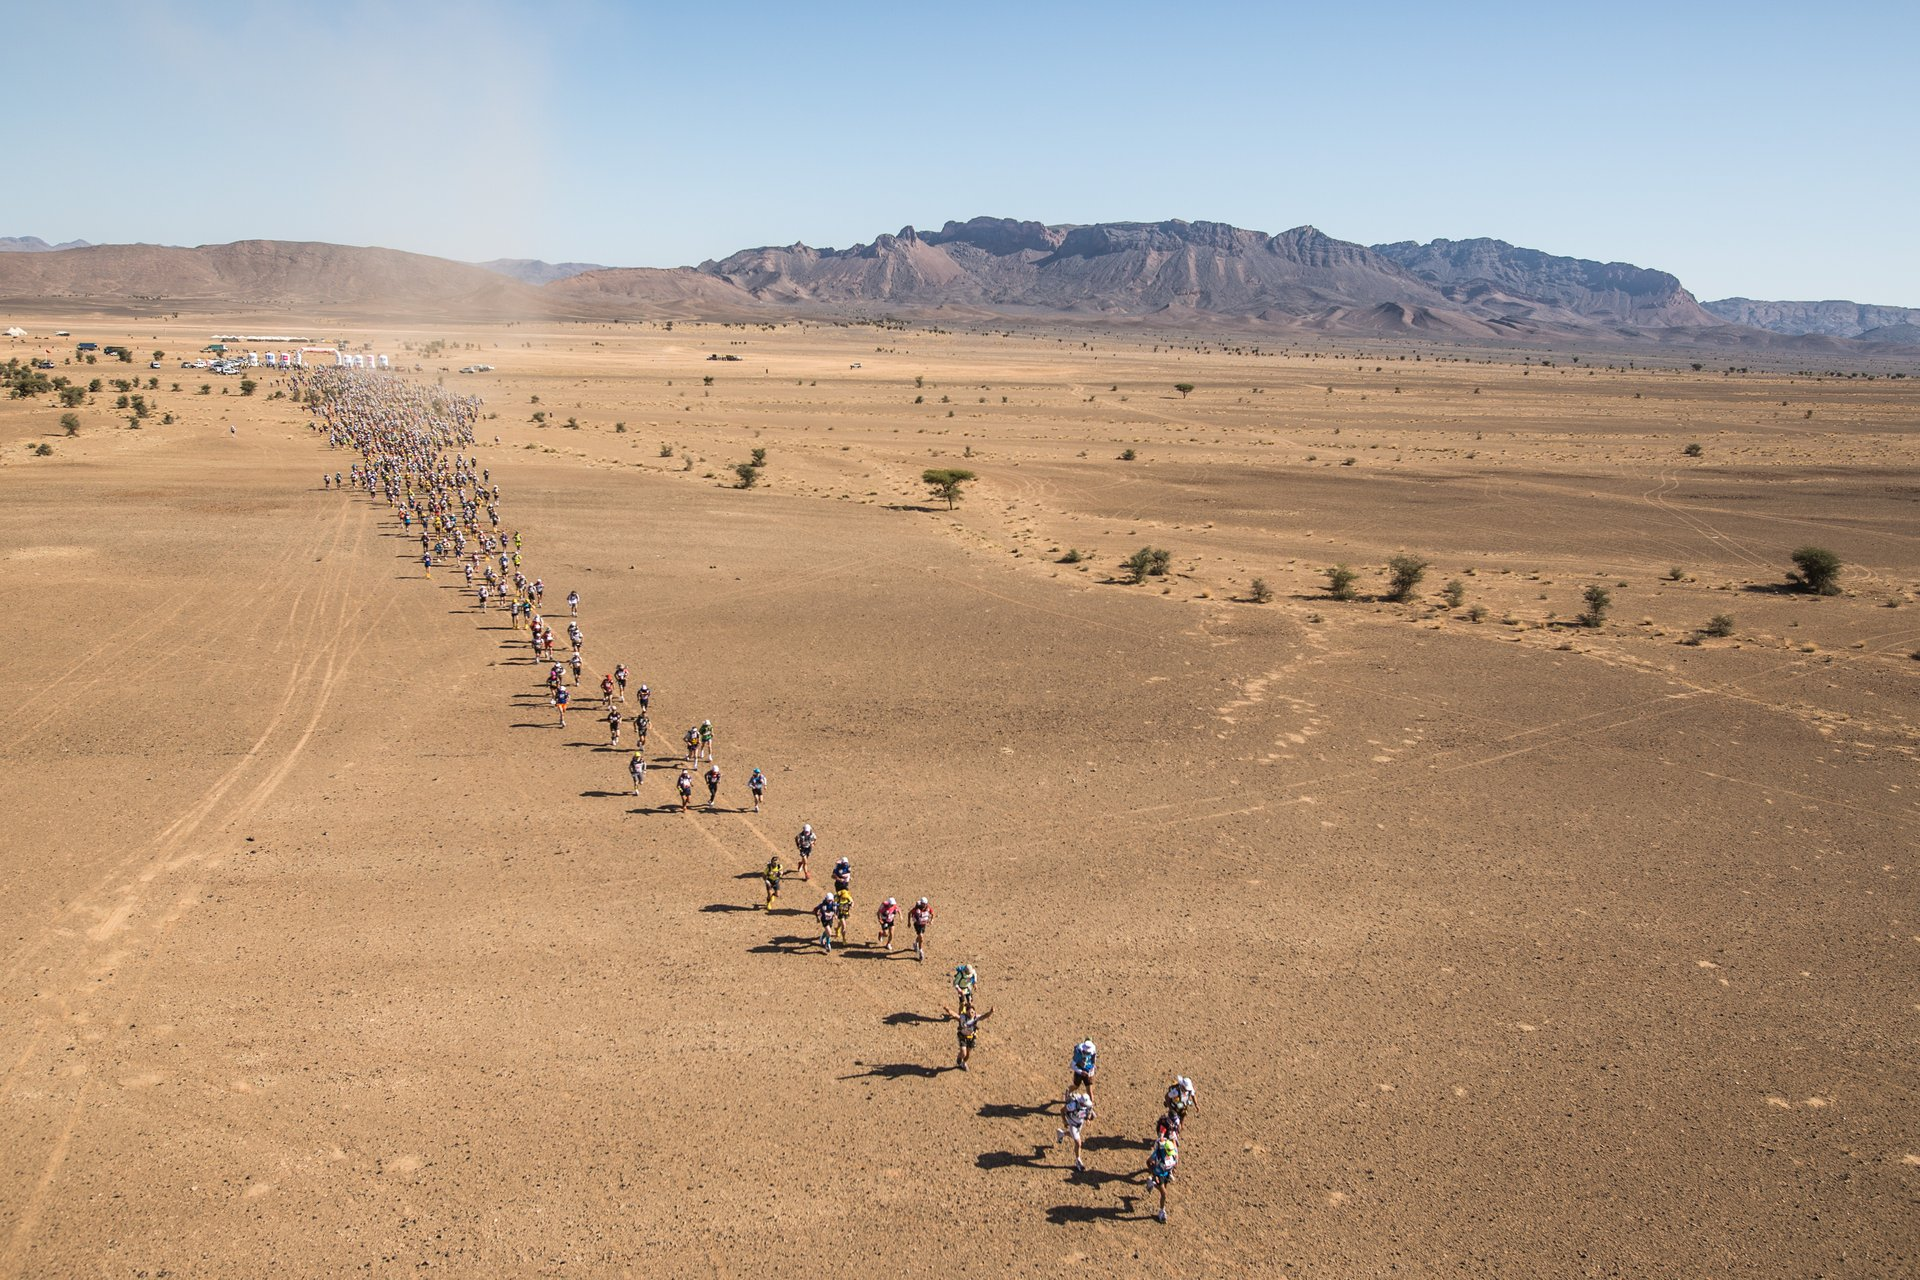 Best time to see Marathon Des Sables (MDS) in Morocco 2019